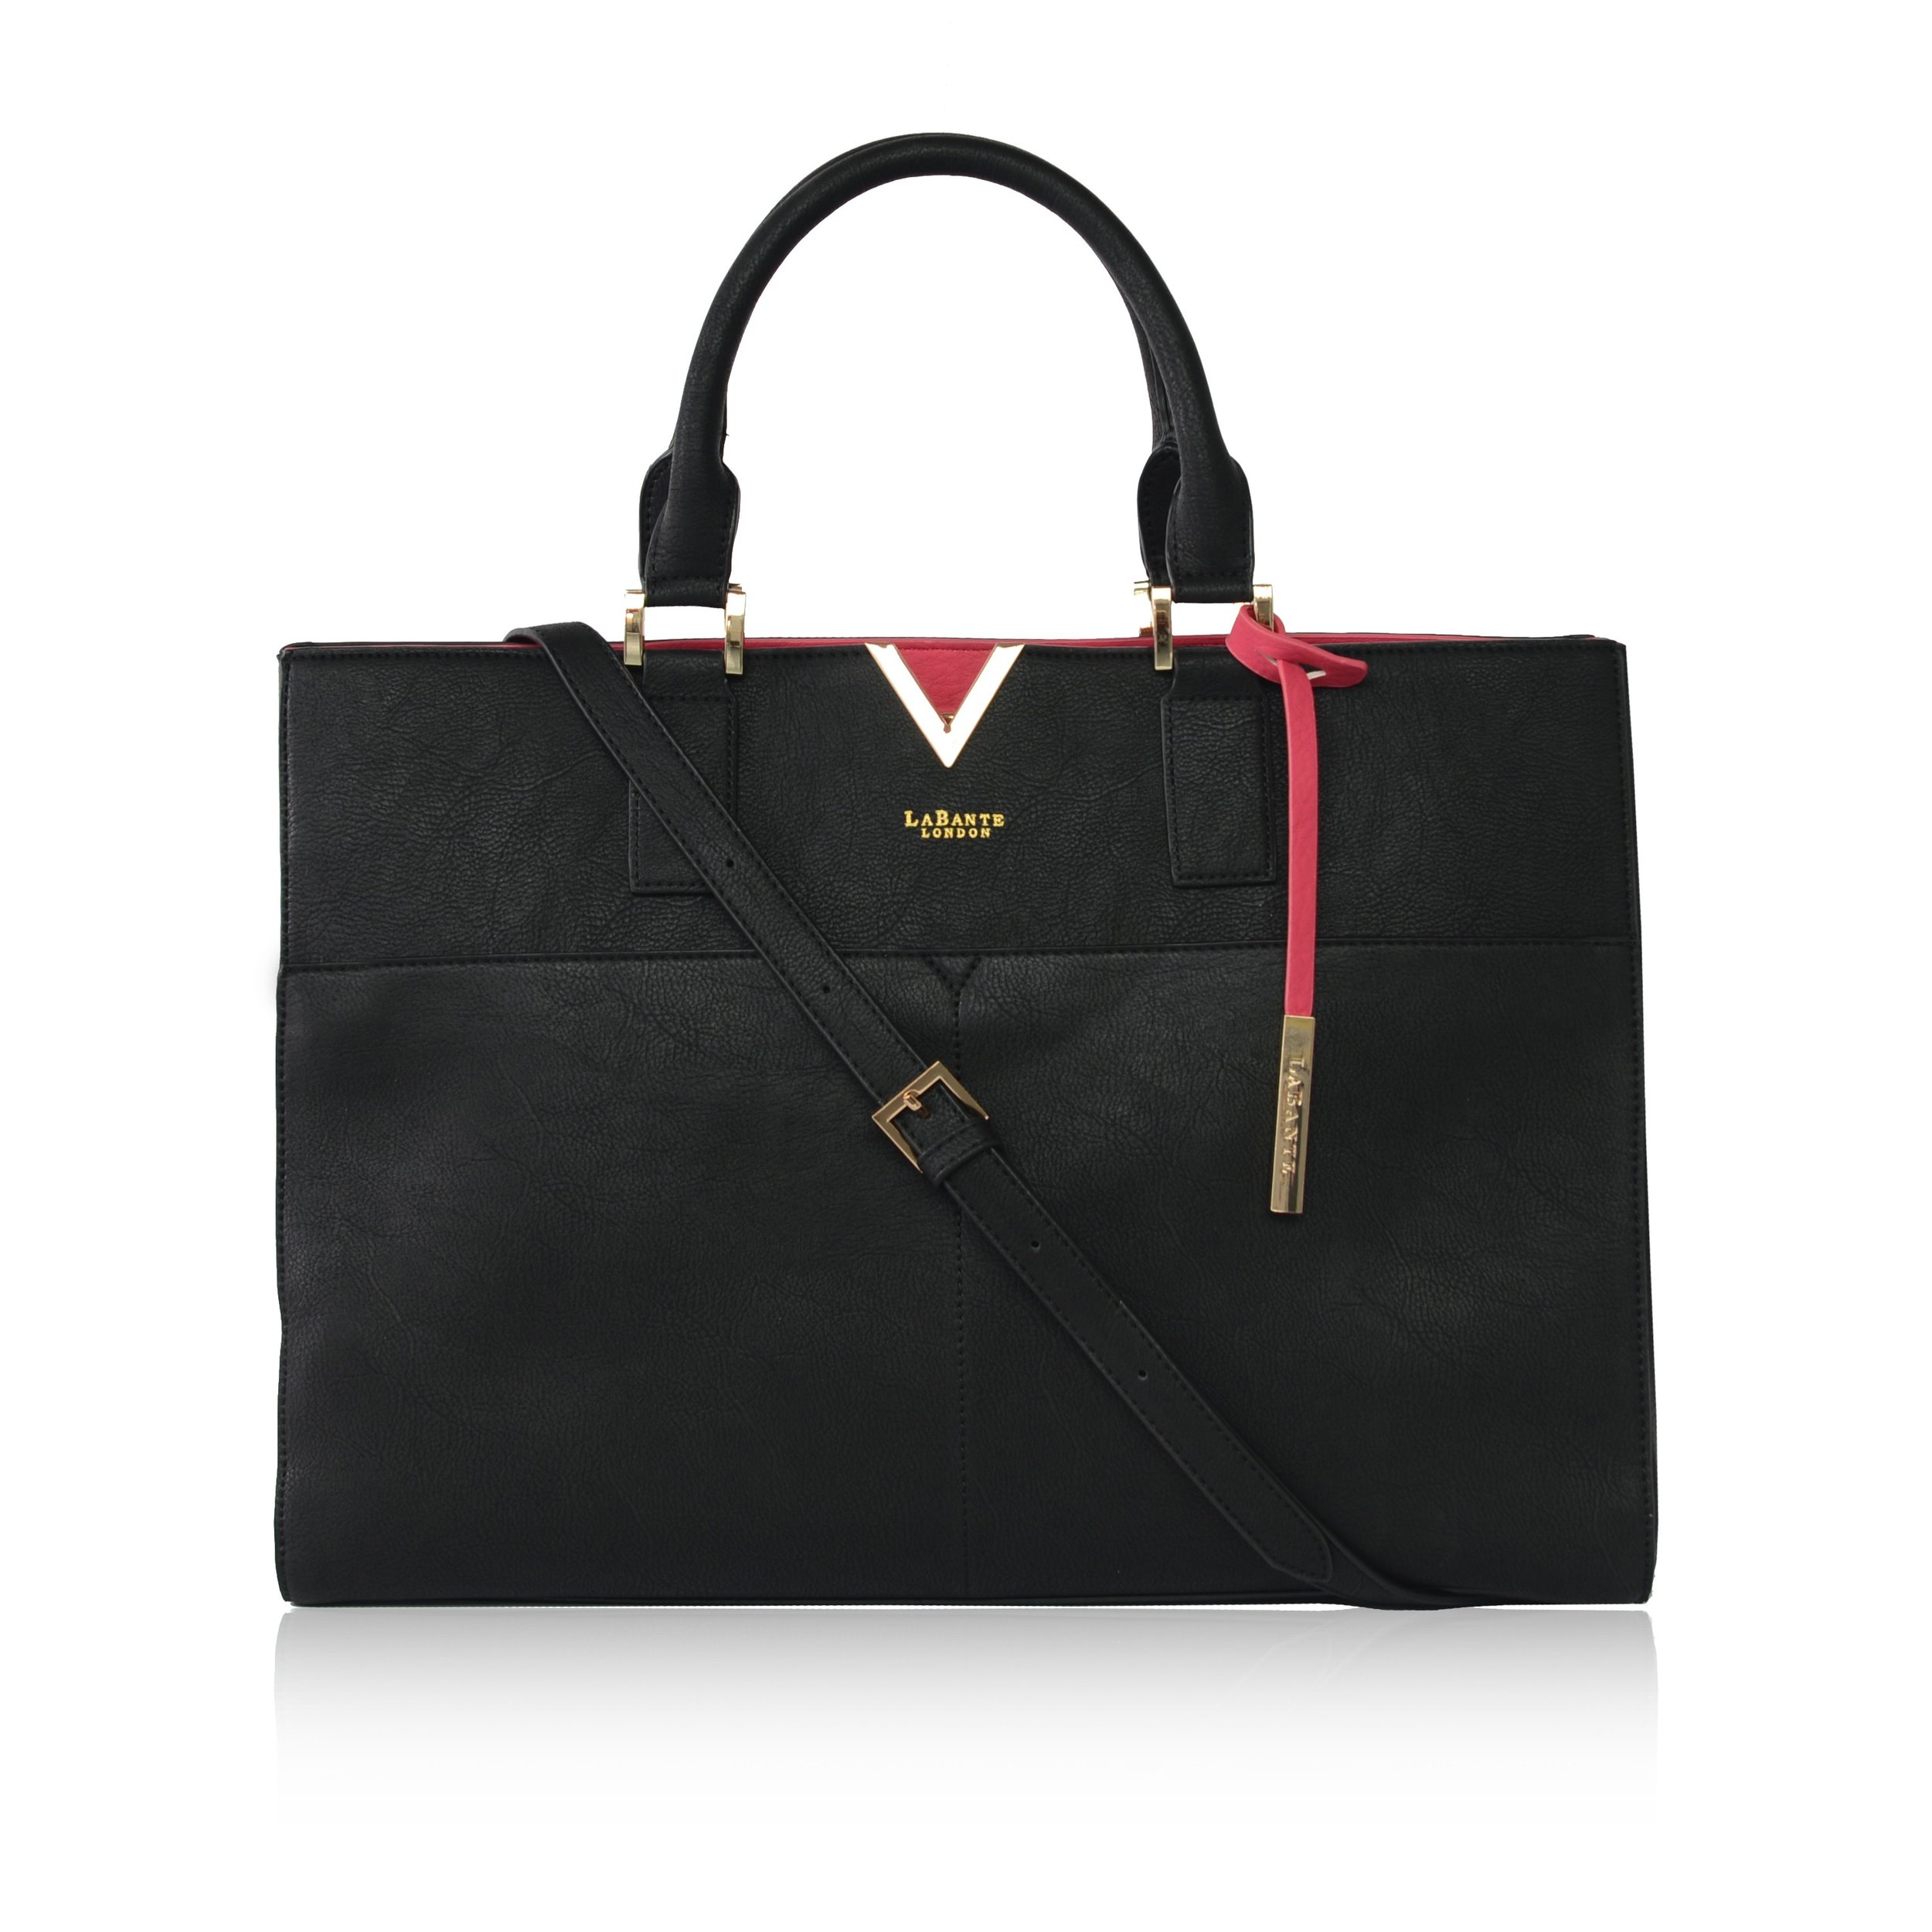 LABANTE LONDON   aVANT CARRYALL BAG, BLACK    €175,16